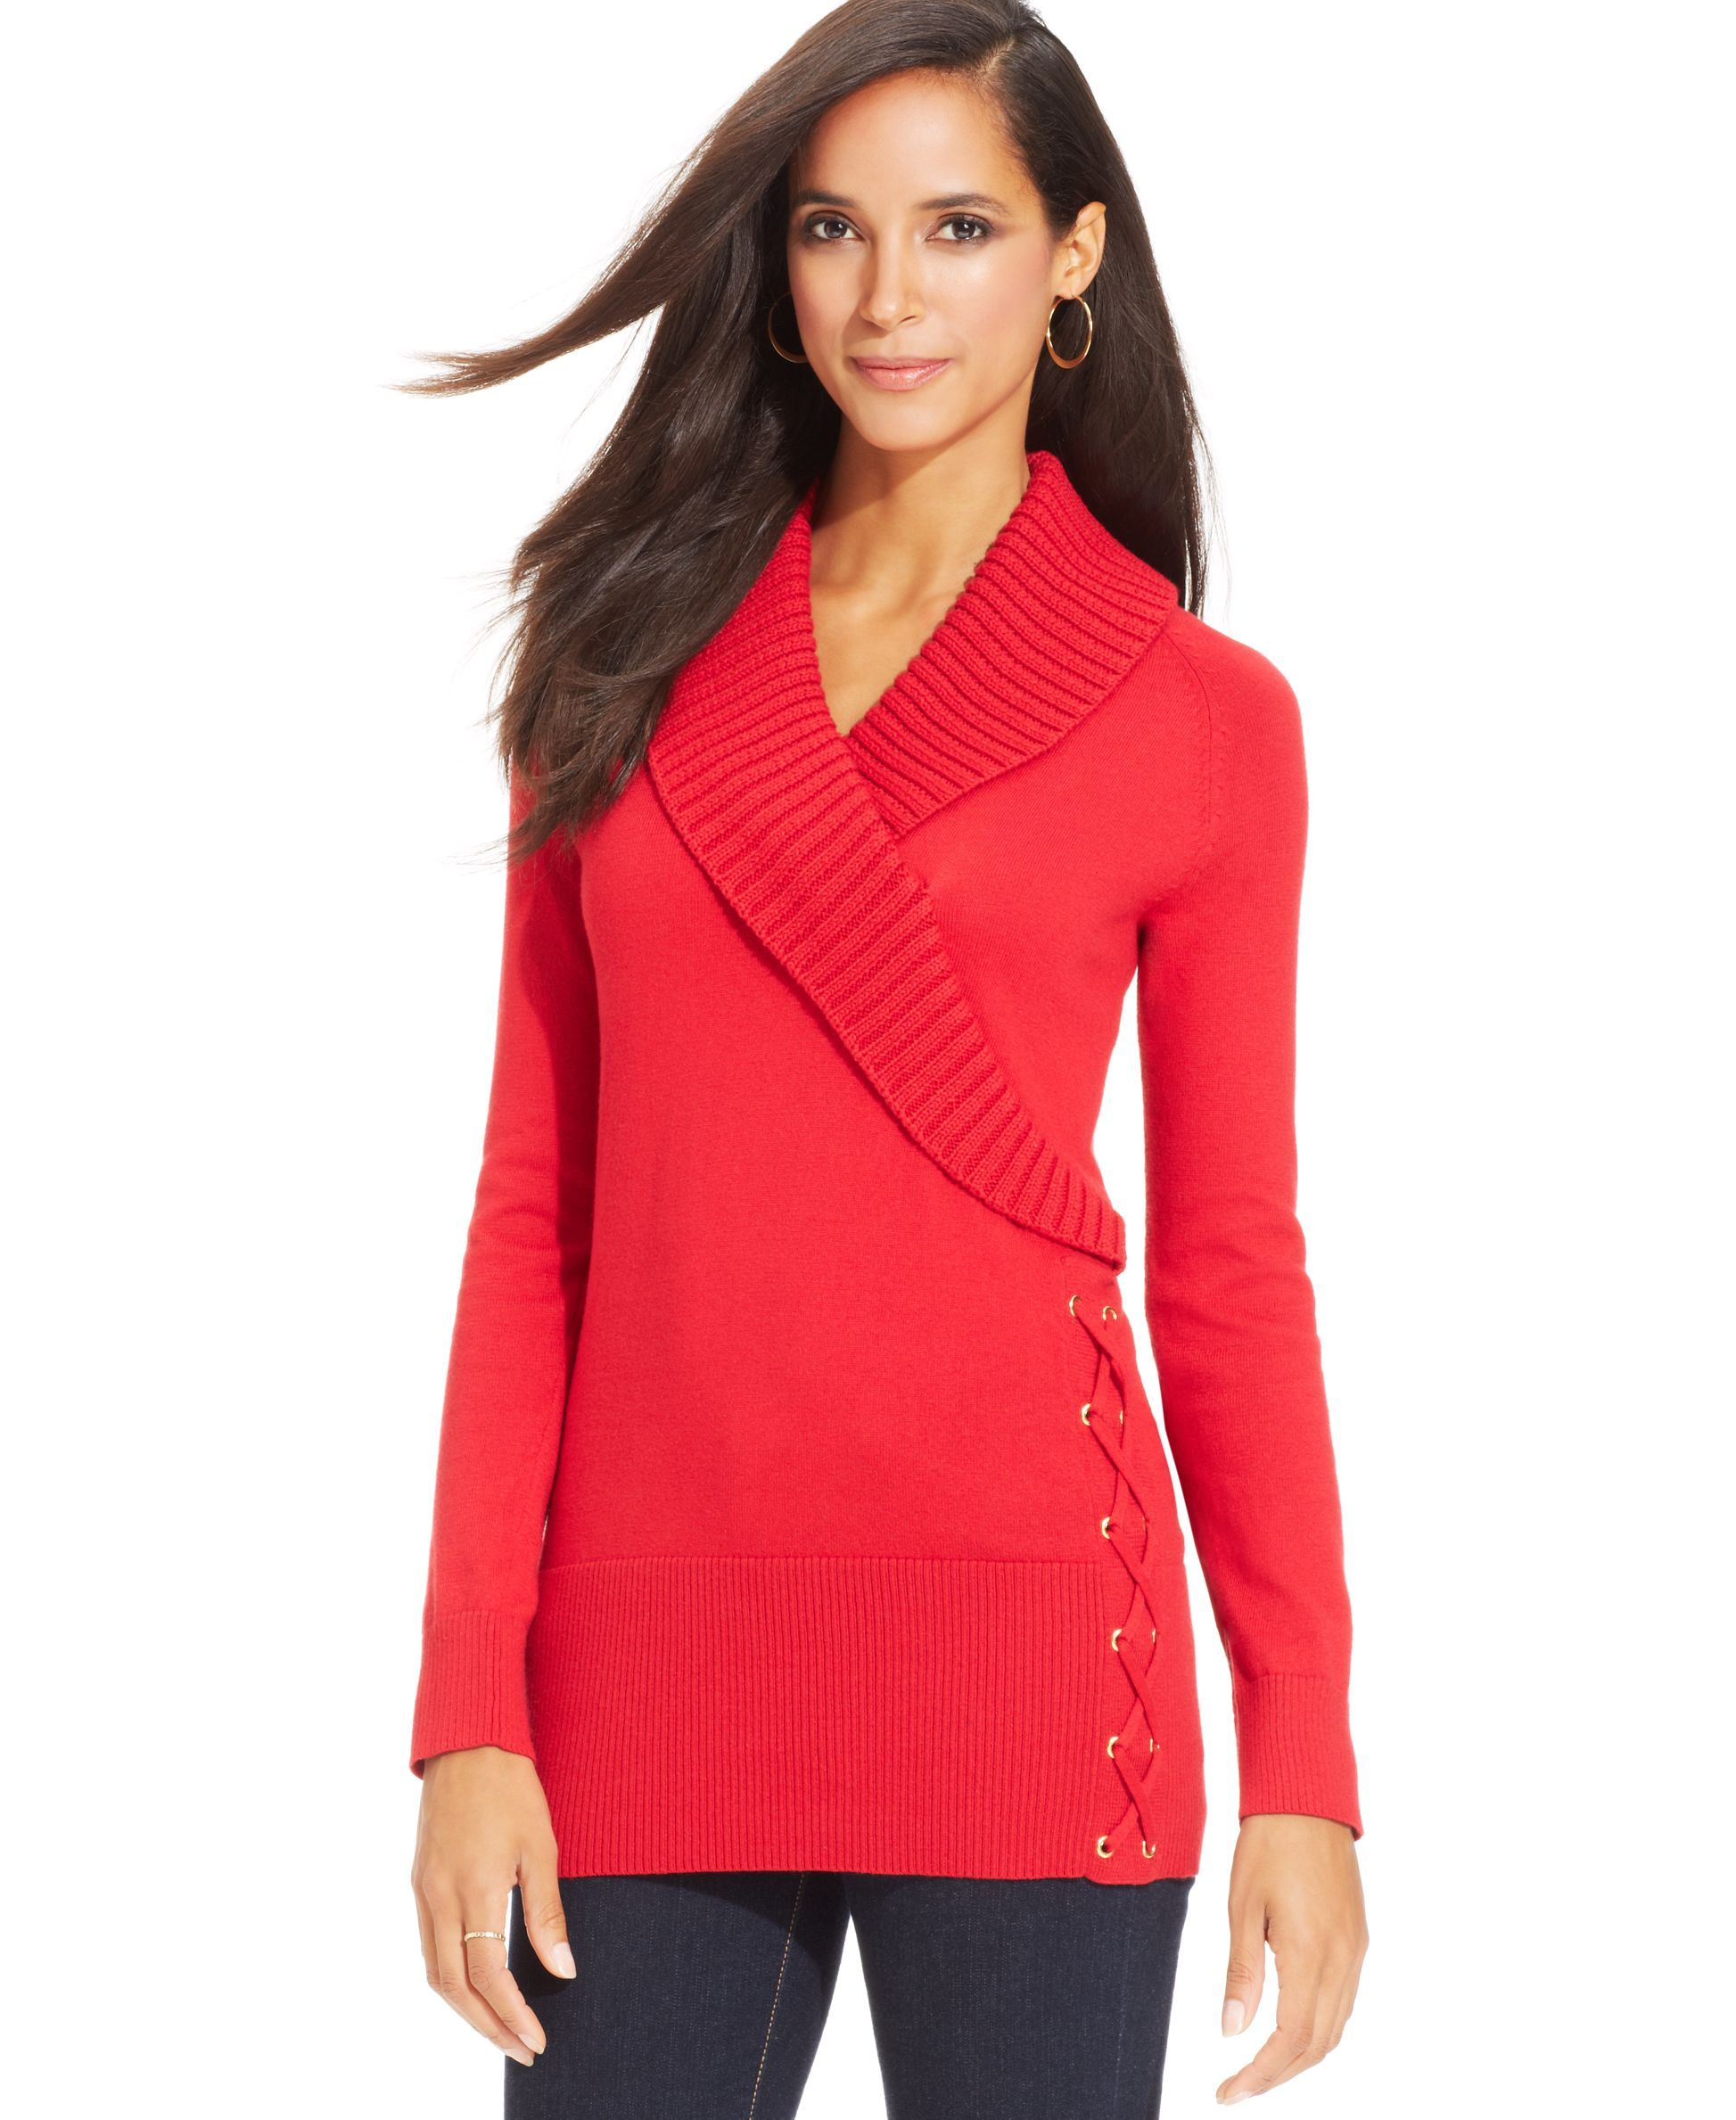 Style&co. Petite Shawl-Collar Lace-Up Tunic Sweater | Products ...